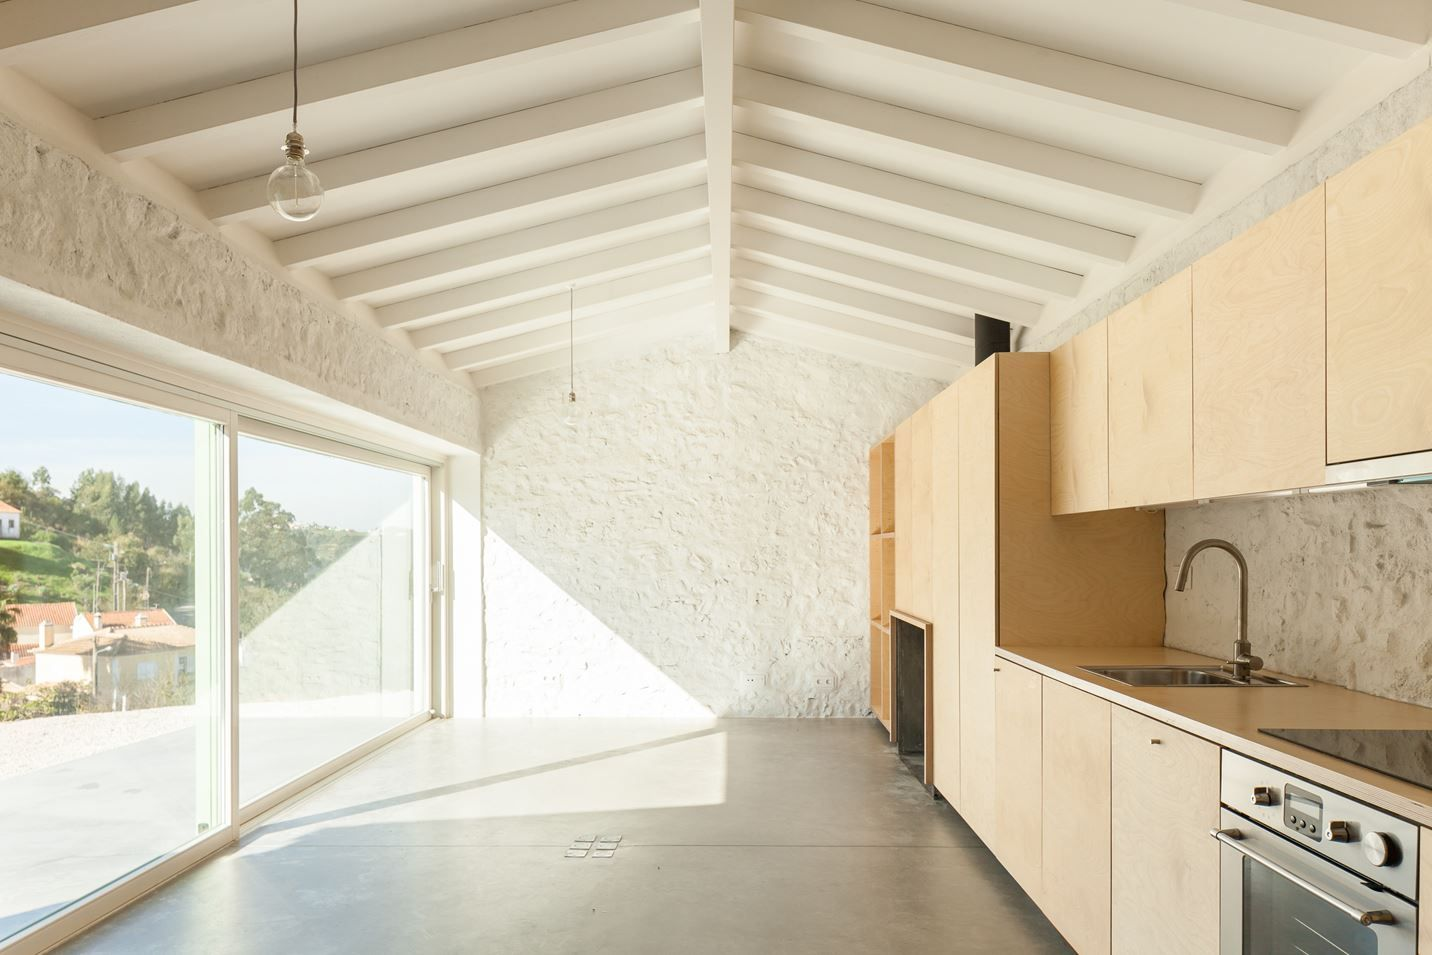 Chanca house picture gallery love architecture! pinterest